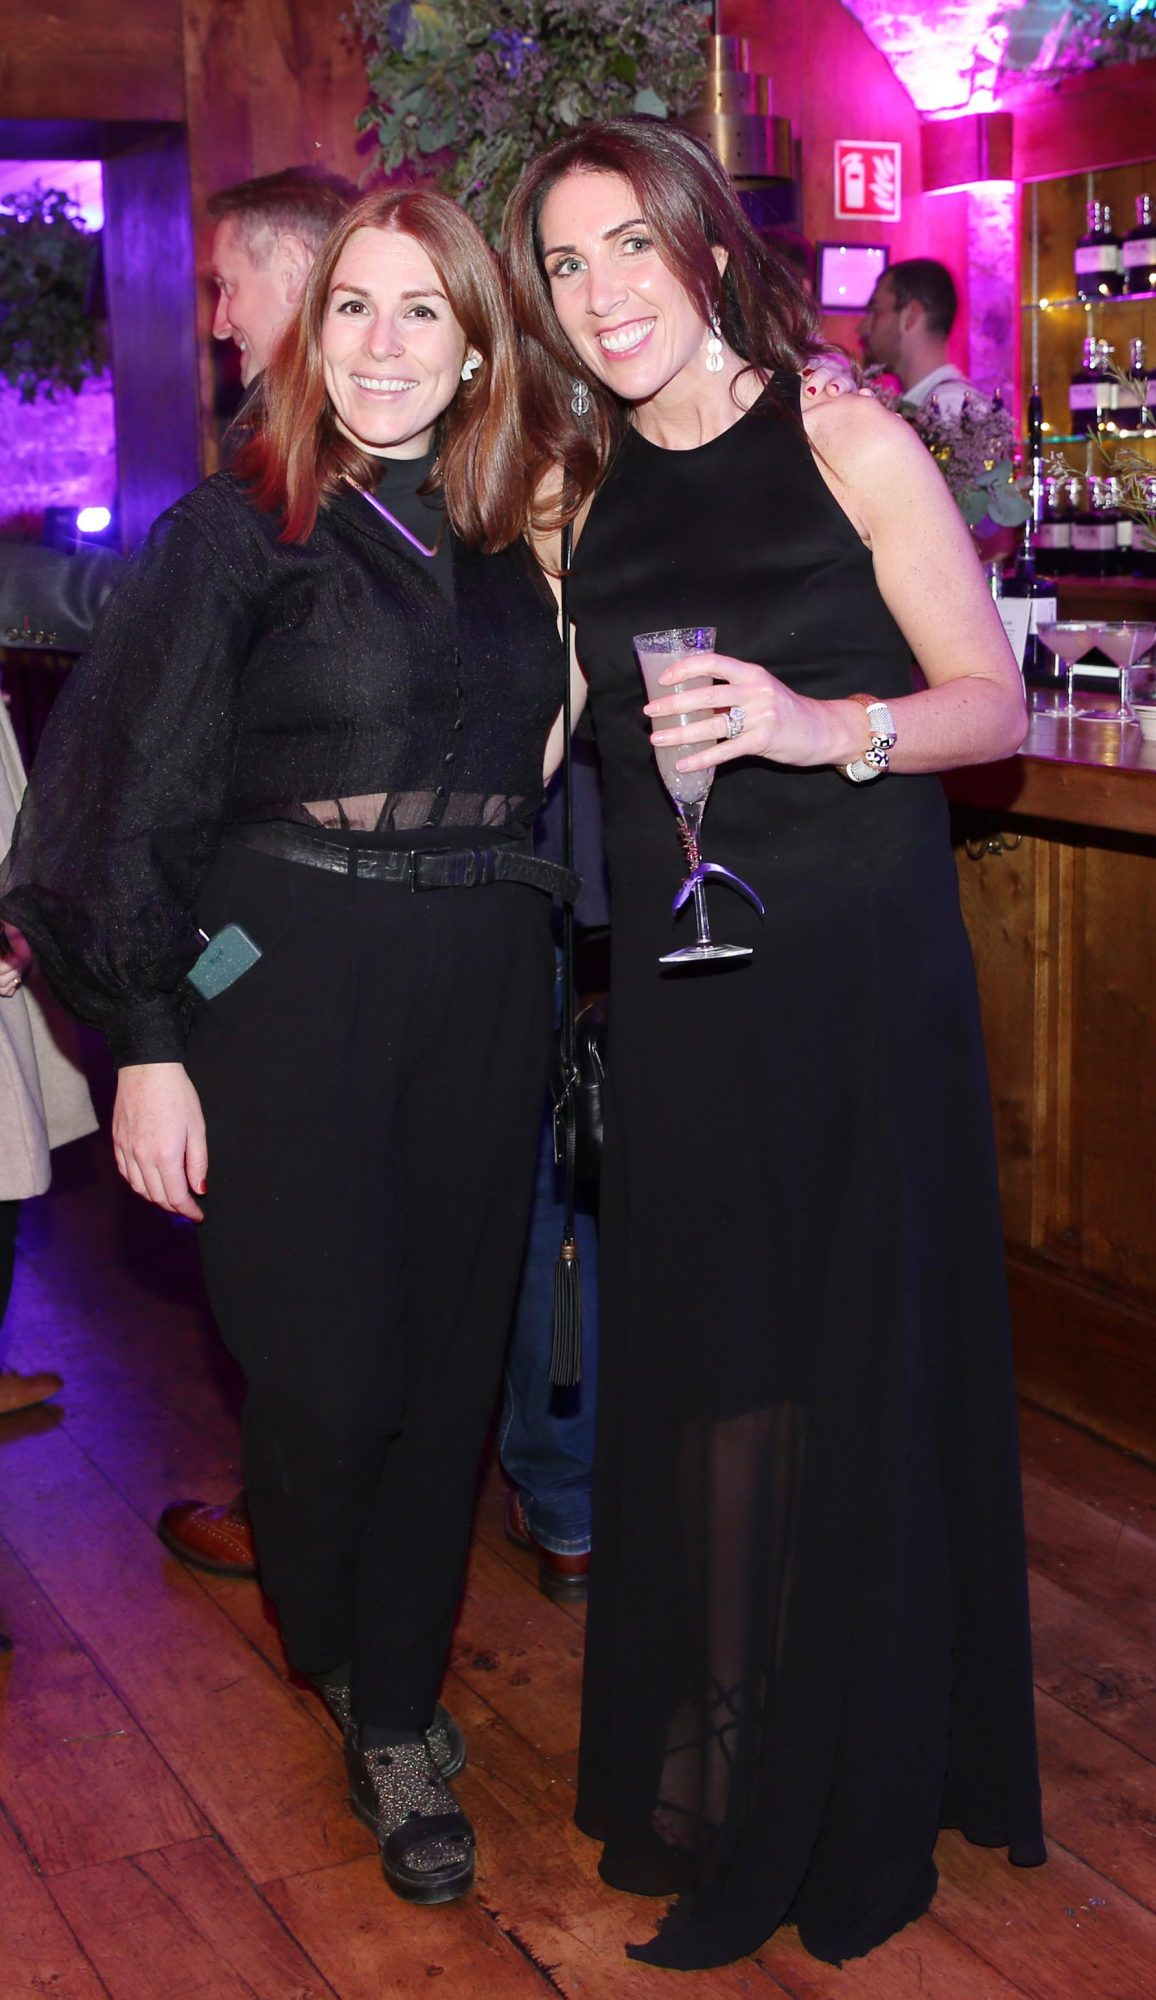 Sarah Byrne and Nicola Connolly pictured at the exclusive global launch of Wilde Irish Gin at The Cellar Bar last night. Photograph: Leon Farrell / Photocall Ireland